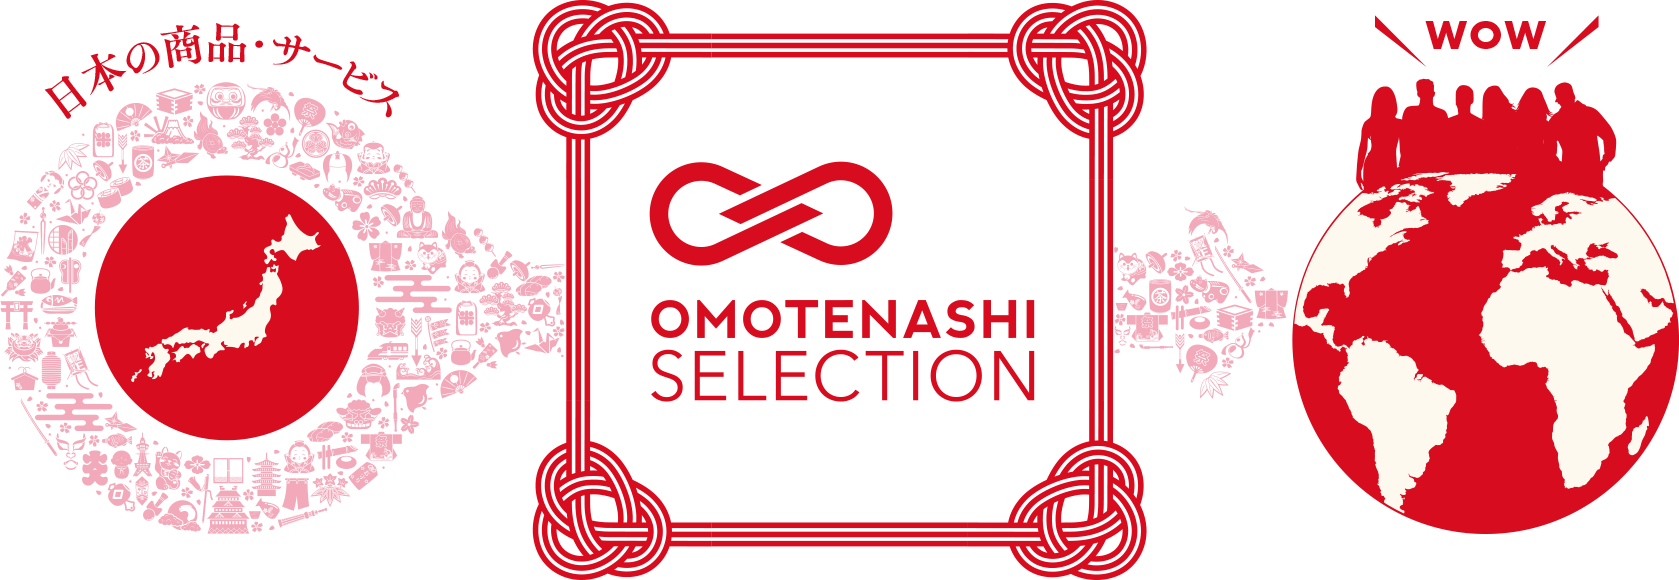 OMOTENASHI Selection とは